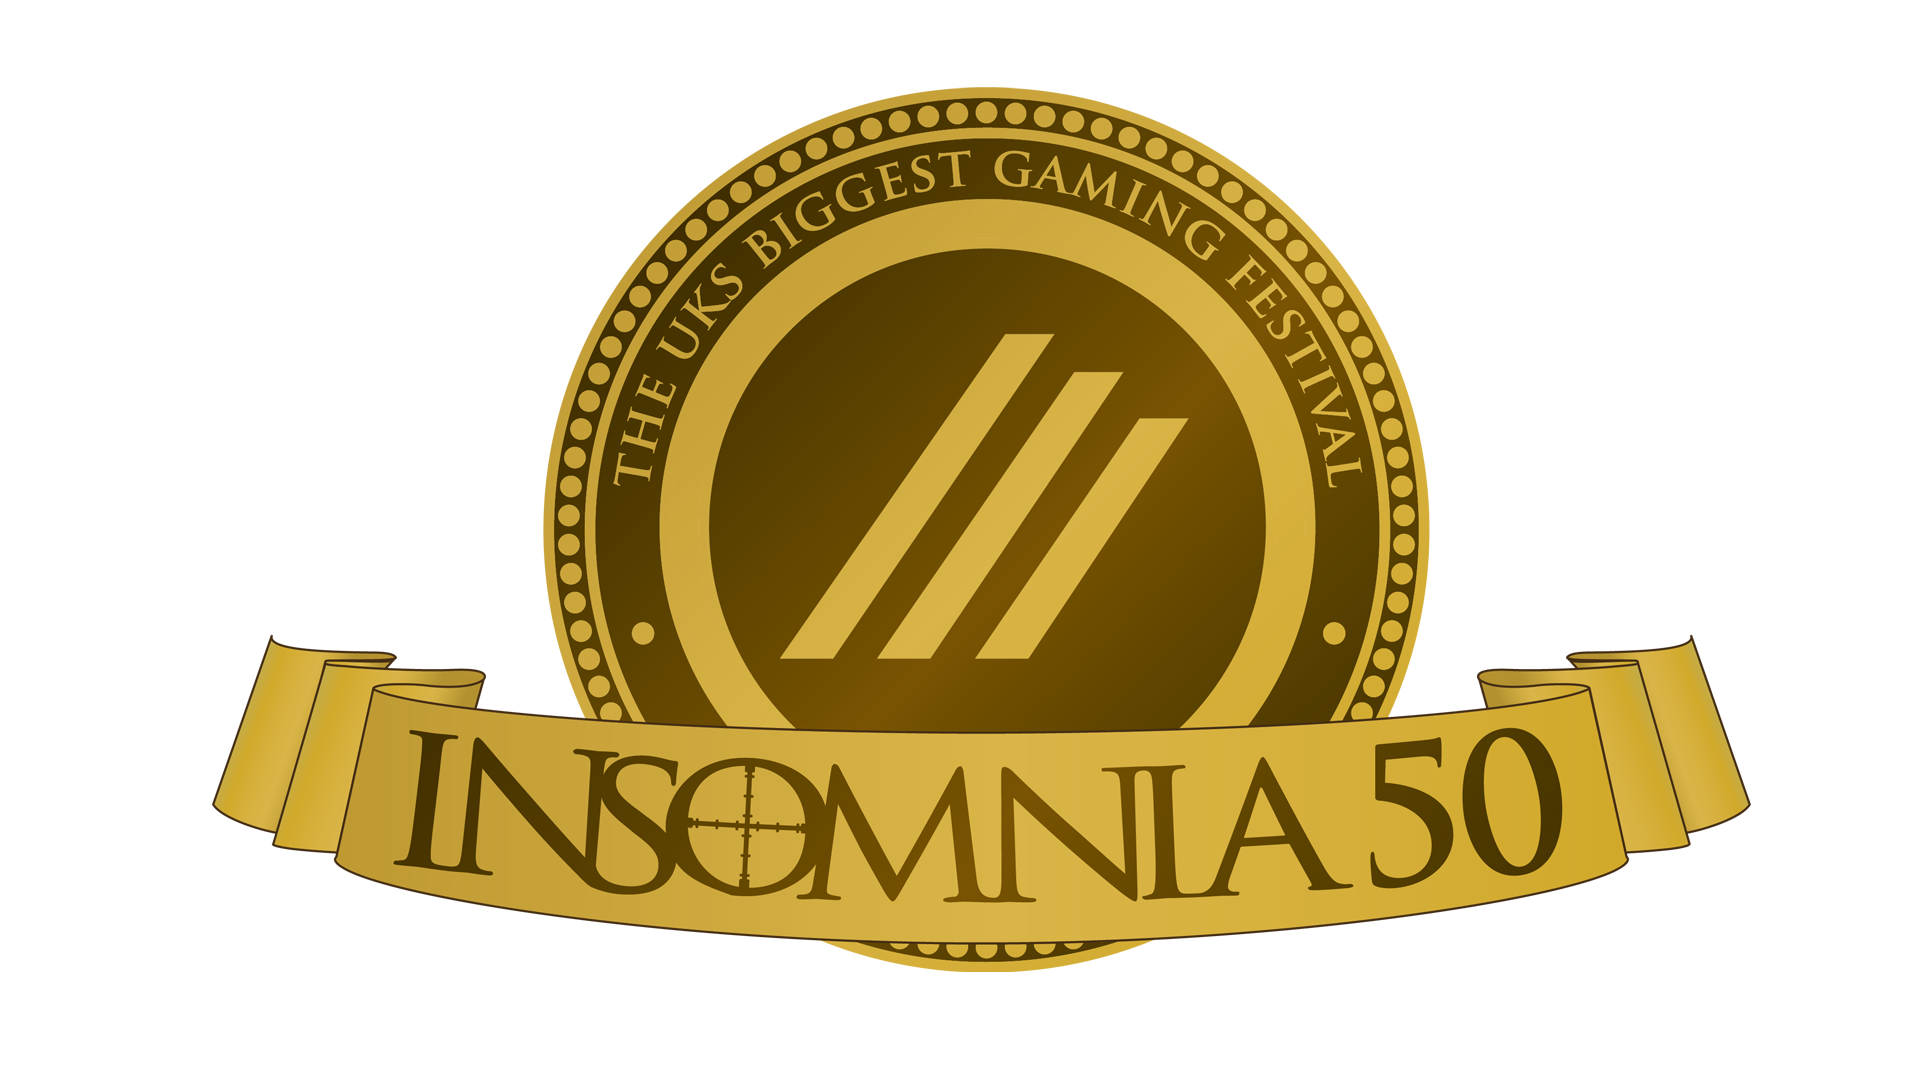 Insomnia50 – Saturday Schedule